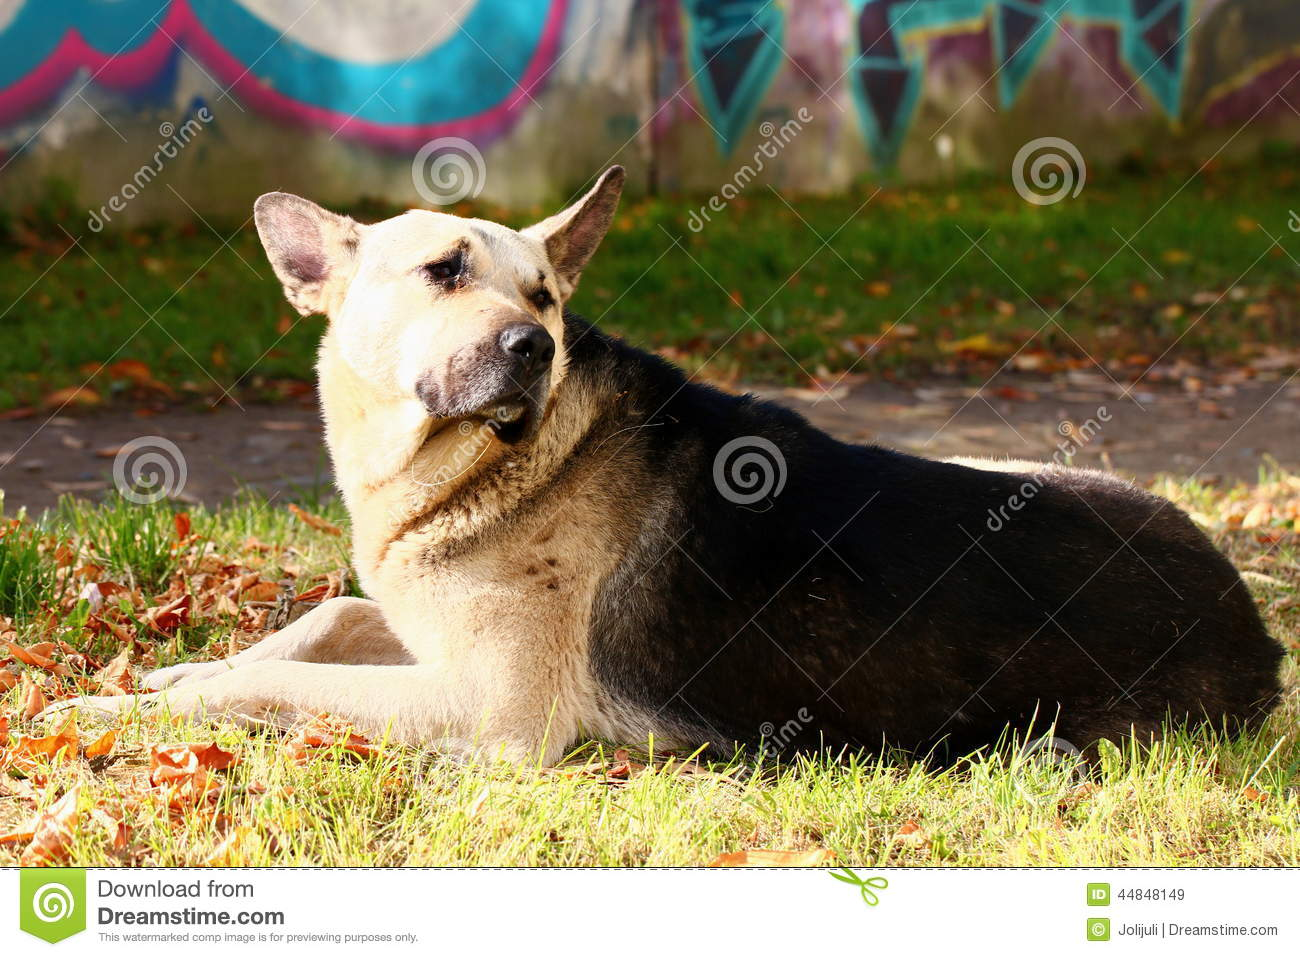 Stray Dog Stock Photo - Image: 44848149